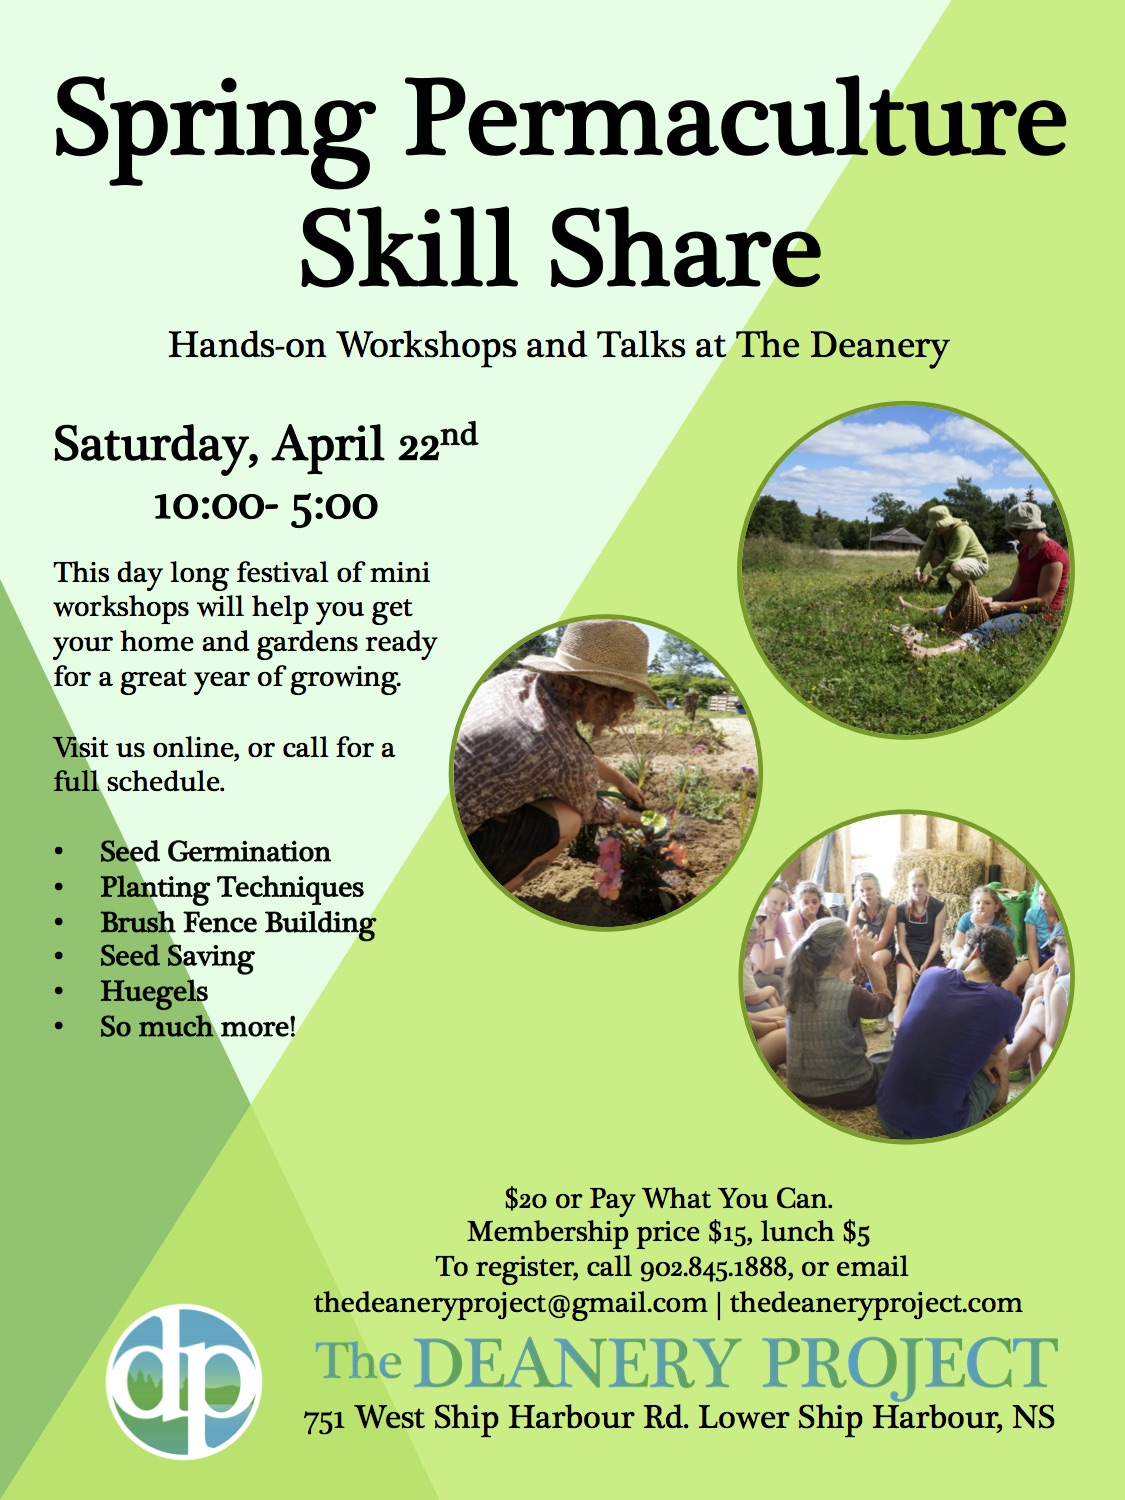 Spring Permaculture Skill Share- The Deanery Project